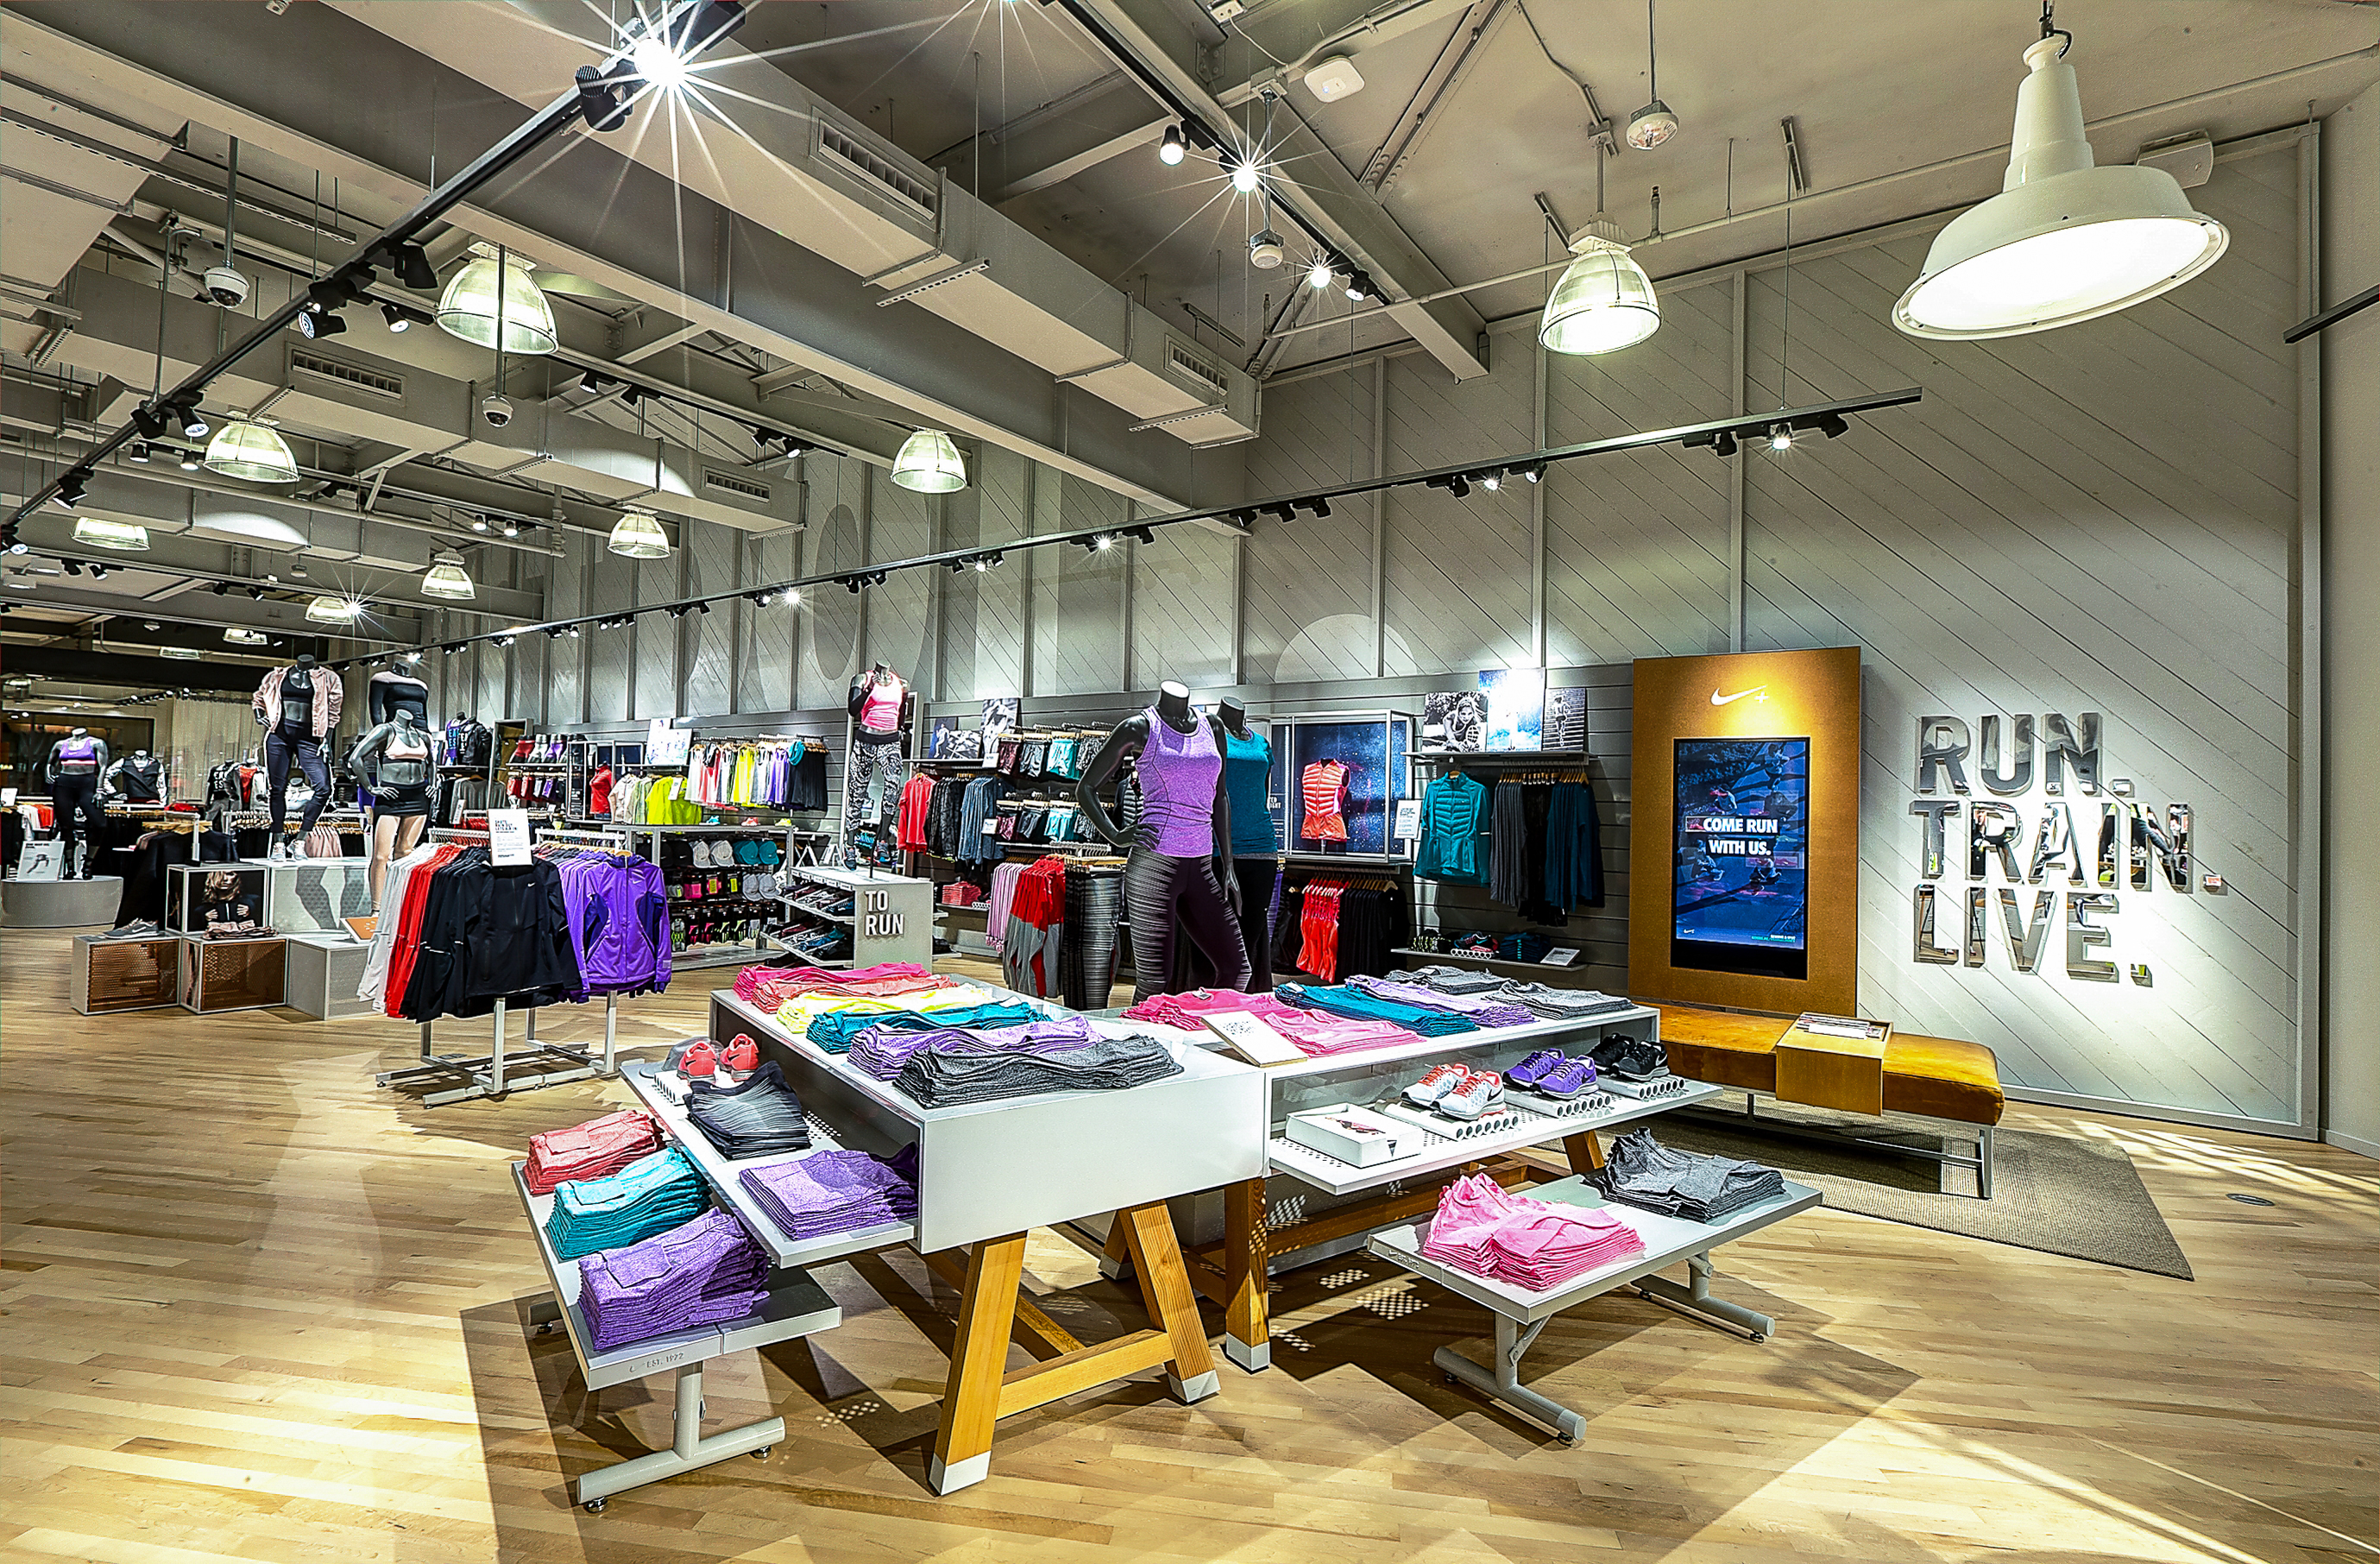 nike women s only store with fitness studio opens in newport beach nike news. Black Bedroom Furniture Sets. Home Design Ideas